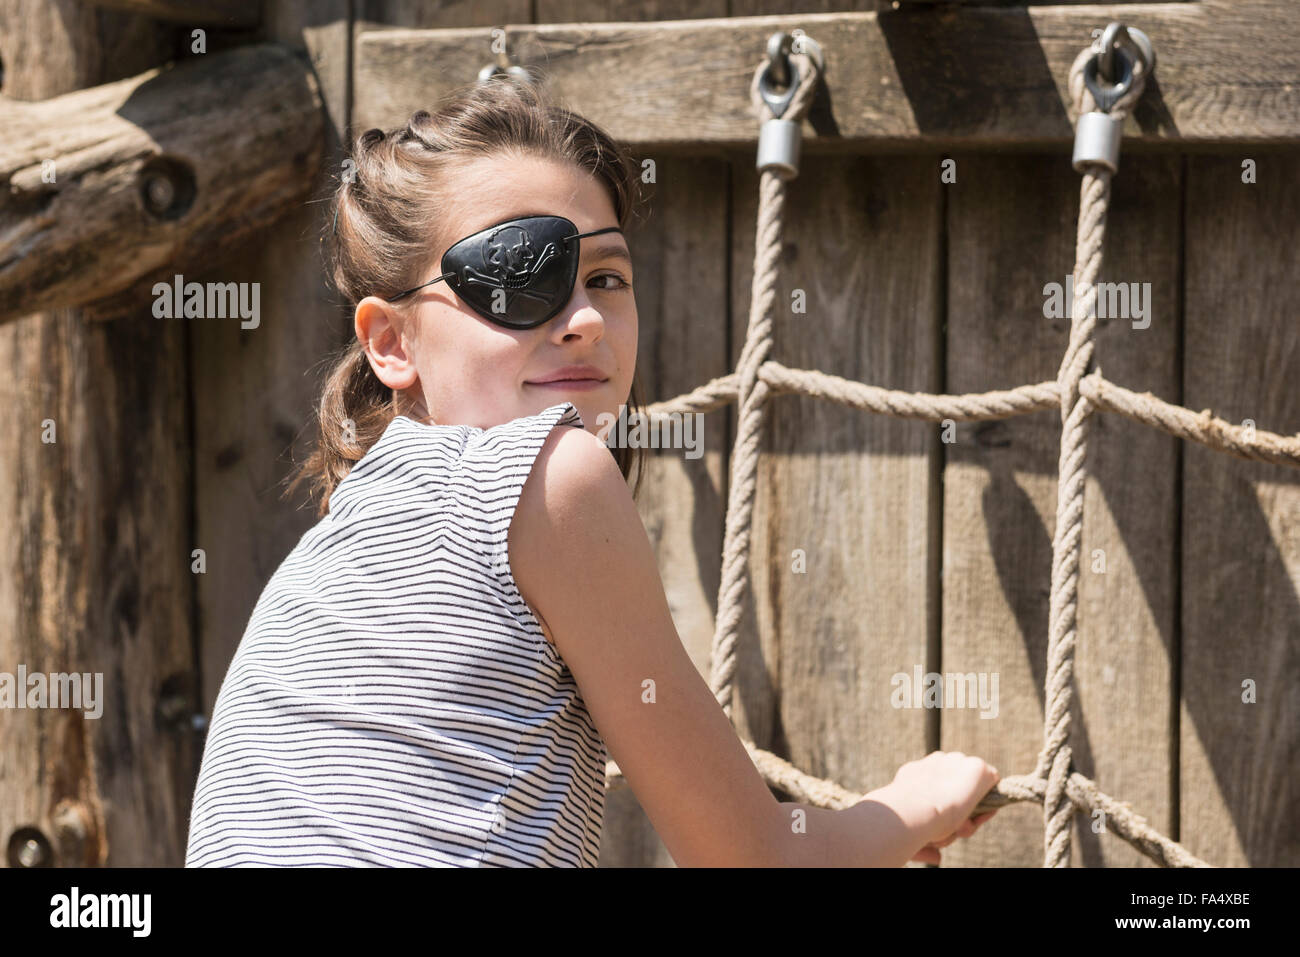 Portrait of a girl climbing on rope in adventure playground, Bavaria, Germany Stock Photo